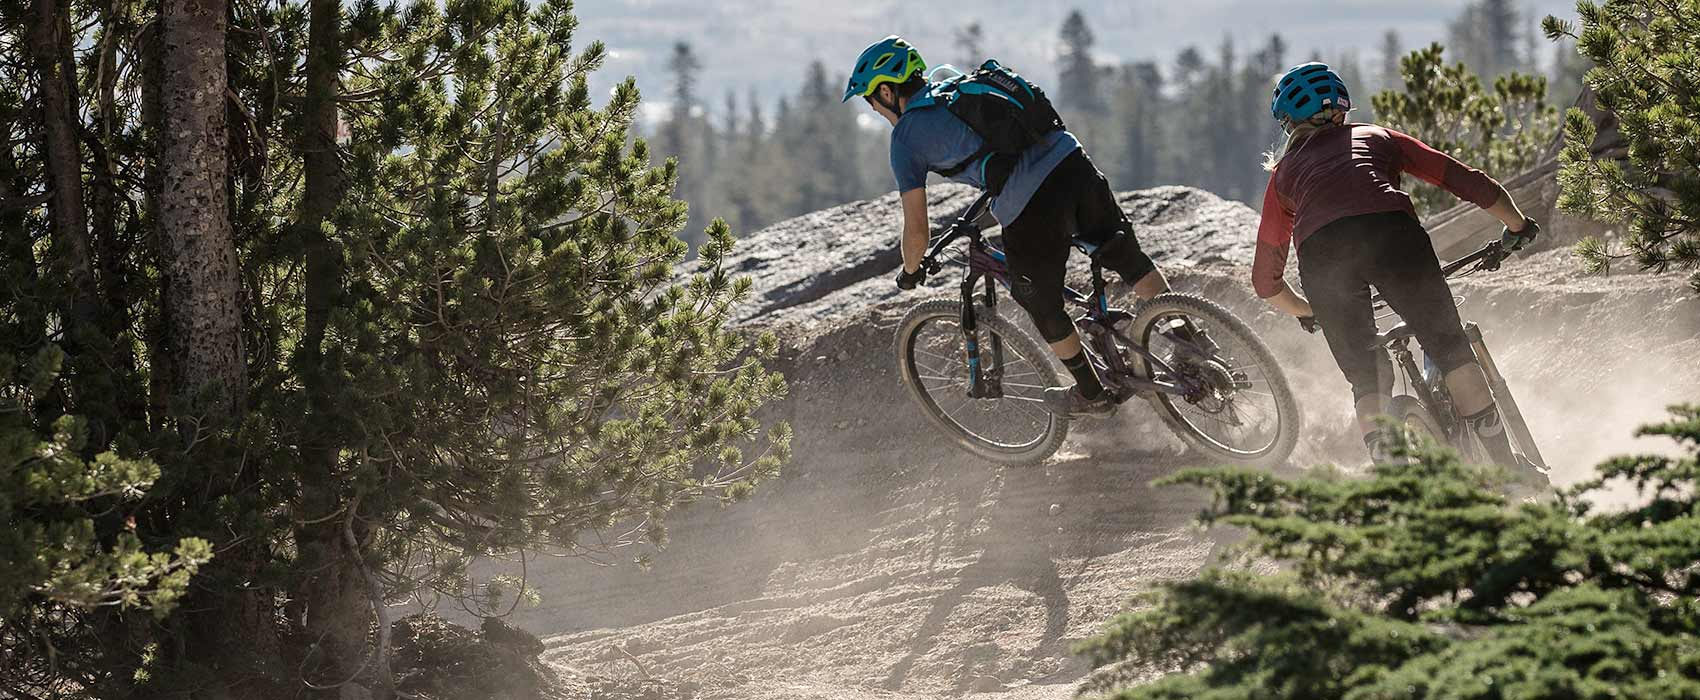 Summer Bike Park Passes